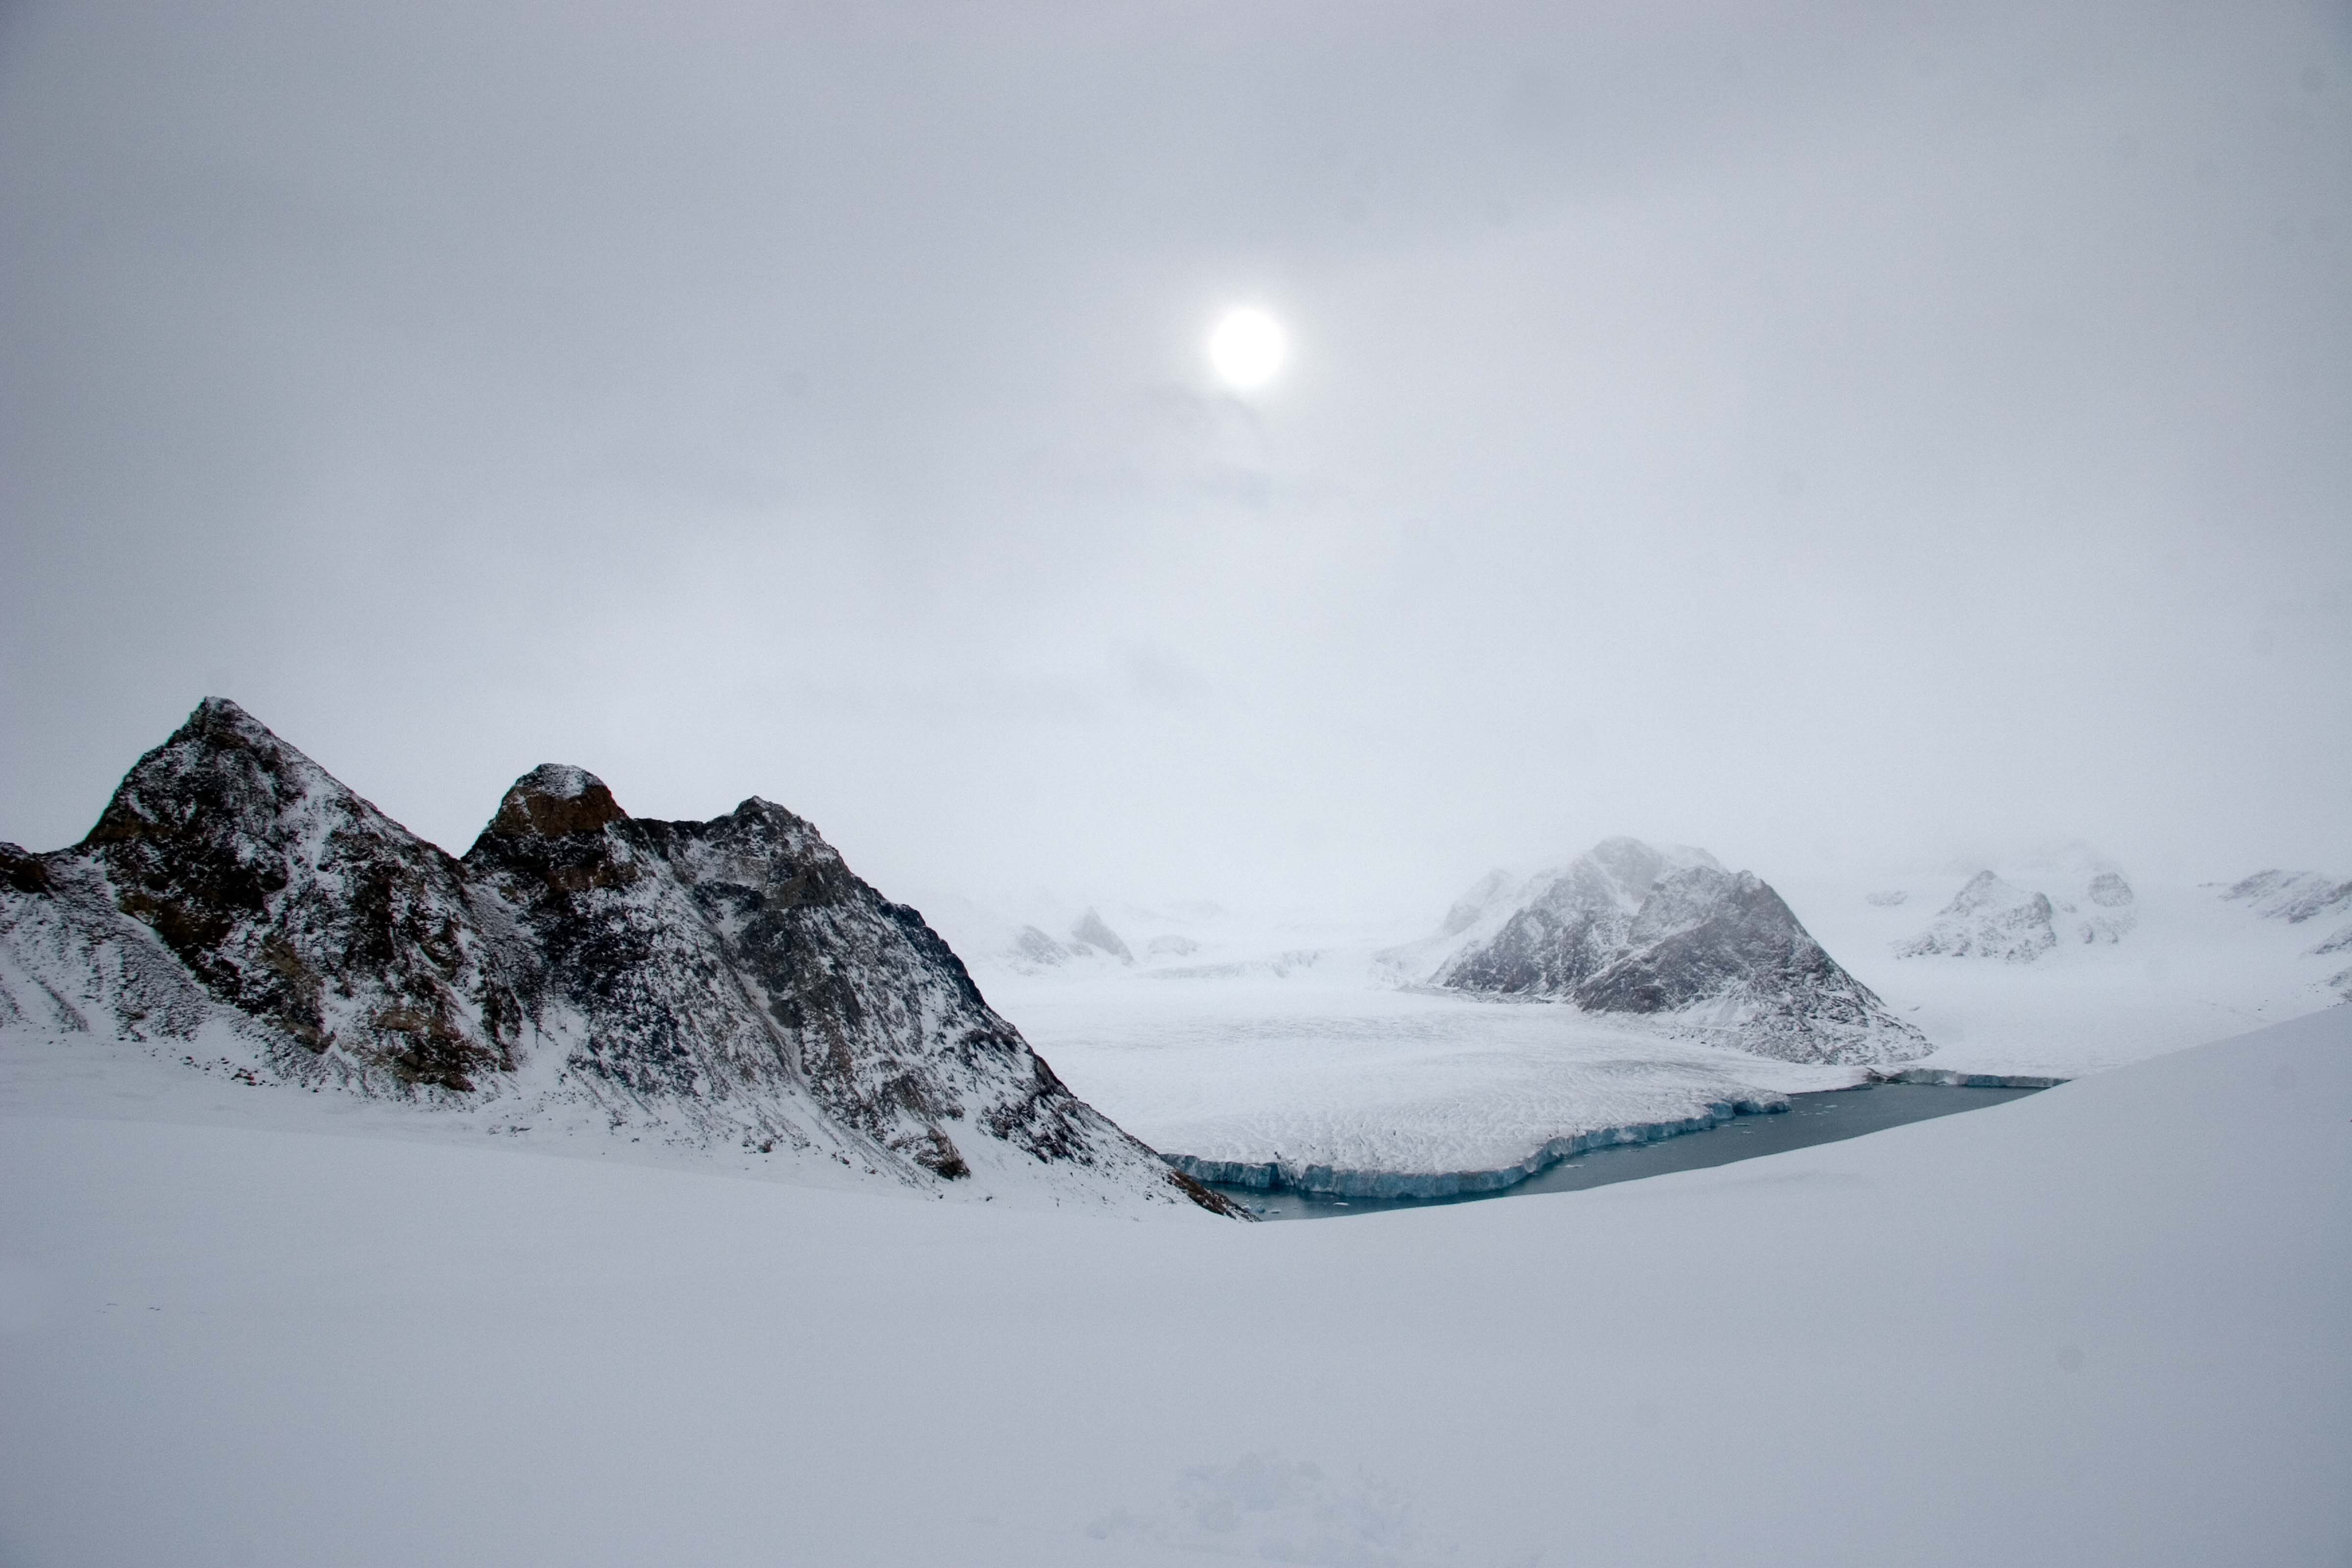 Greenland, Warming Island, off coast of Liverpool Land, New Strait and Pinnacles After Storm, 2006